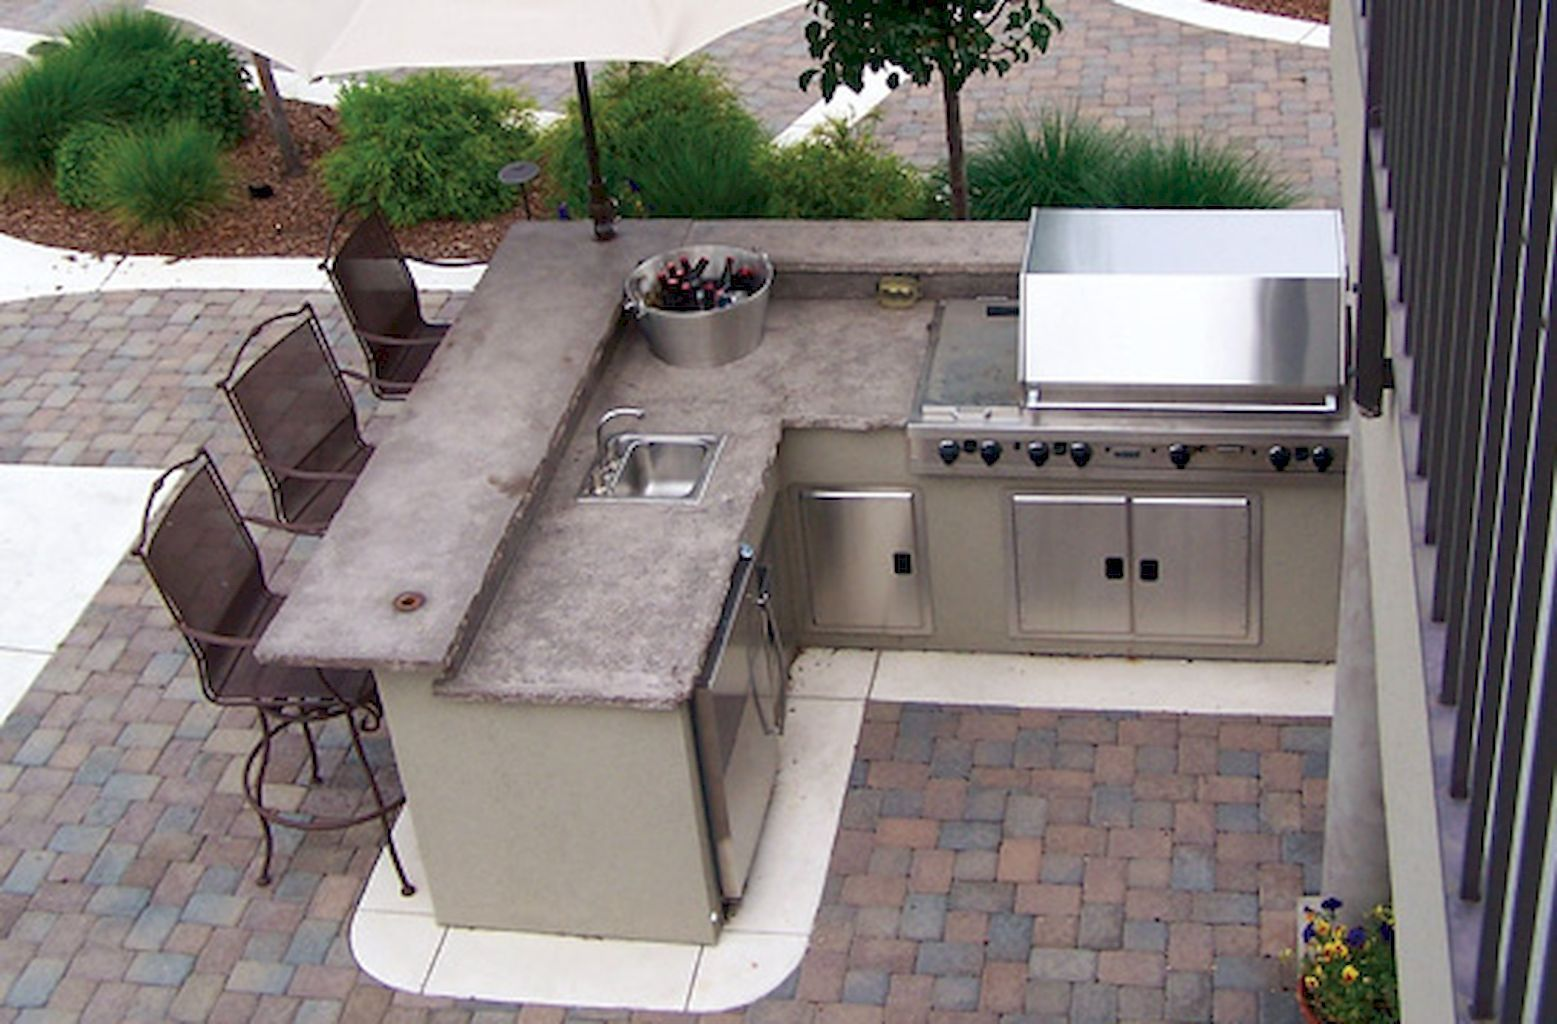 60 Amazing Diy Outdoor Kitchen Ideas On A Budget Outdoorkitchengrillspaces Diy Outdoor Kitchen Outdoor Kitchen Design Patio Kitchen